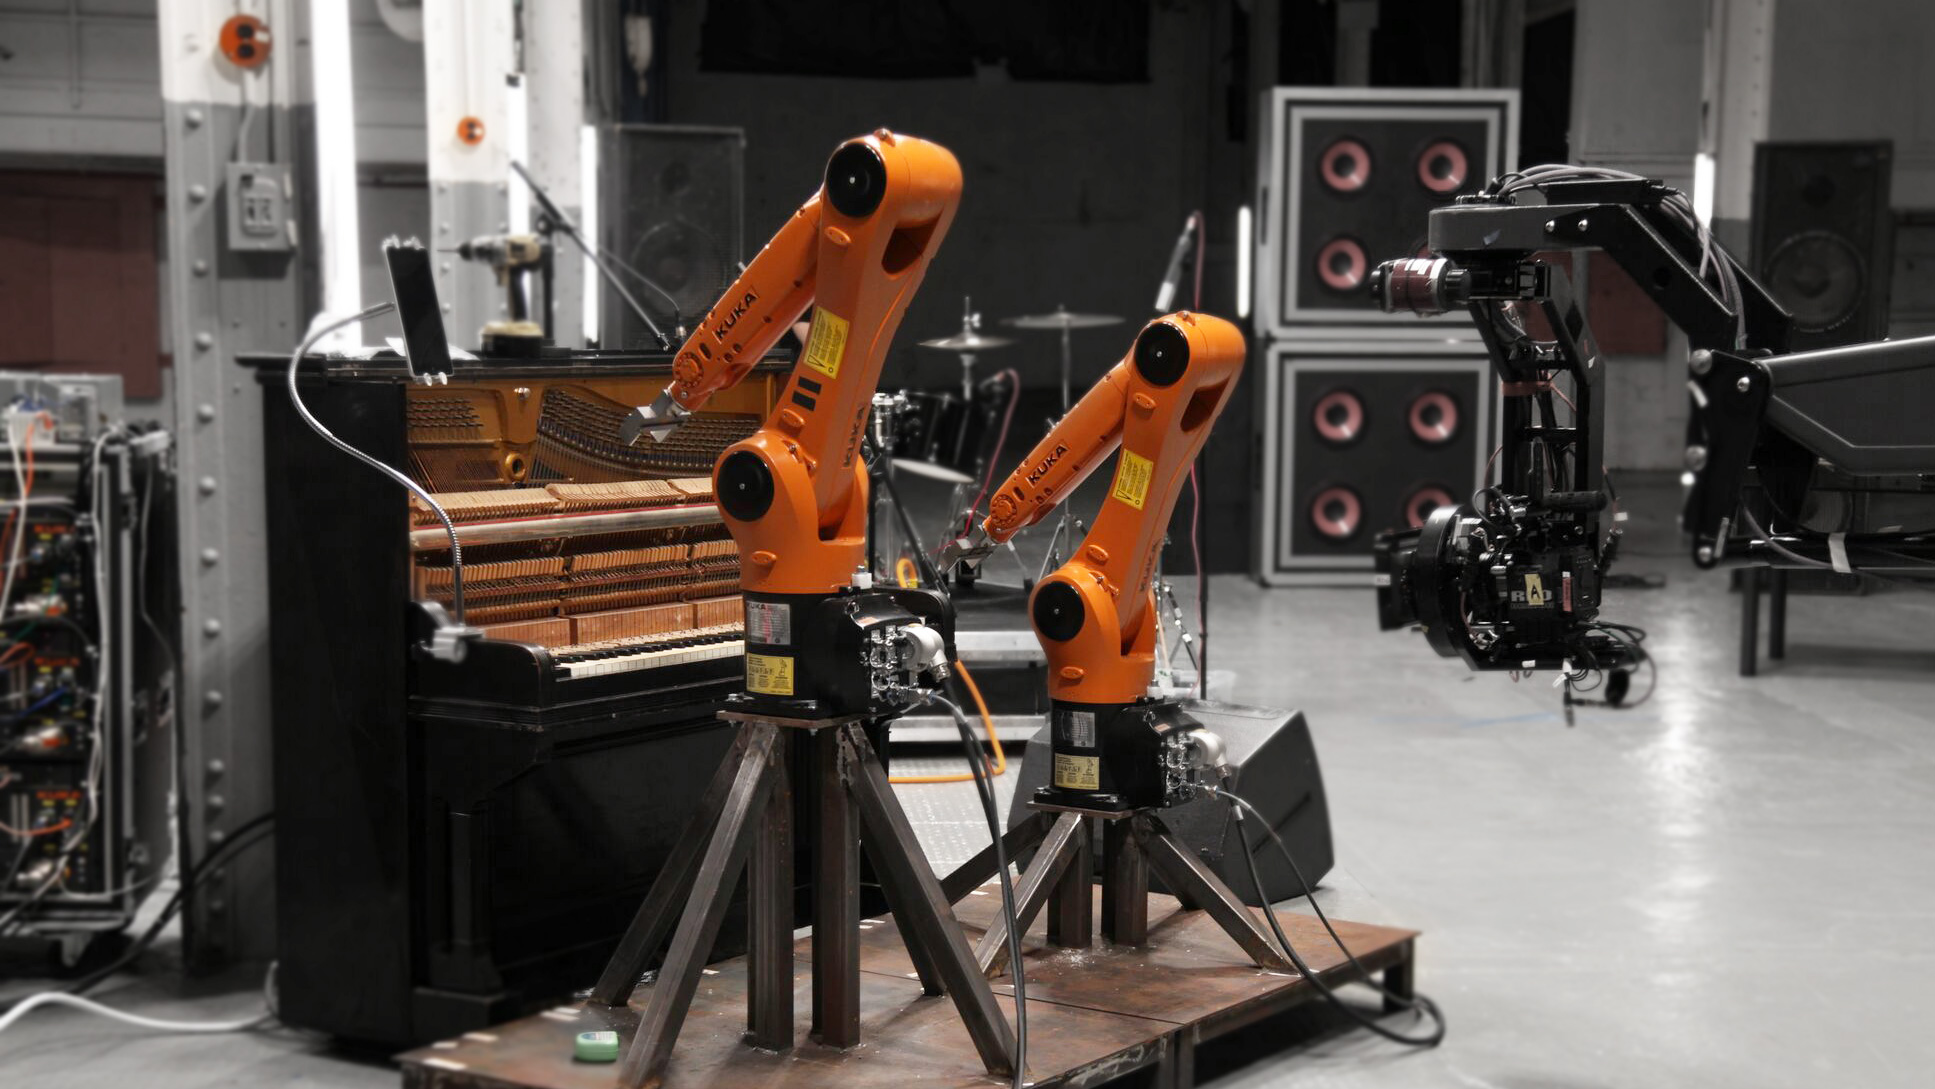 Robots play music: Nigel Stanford video with KUKA robots